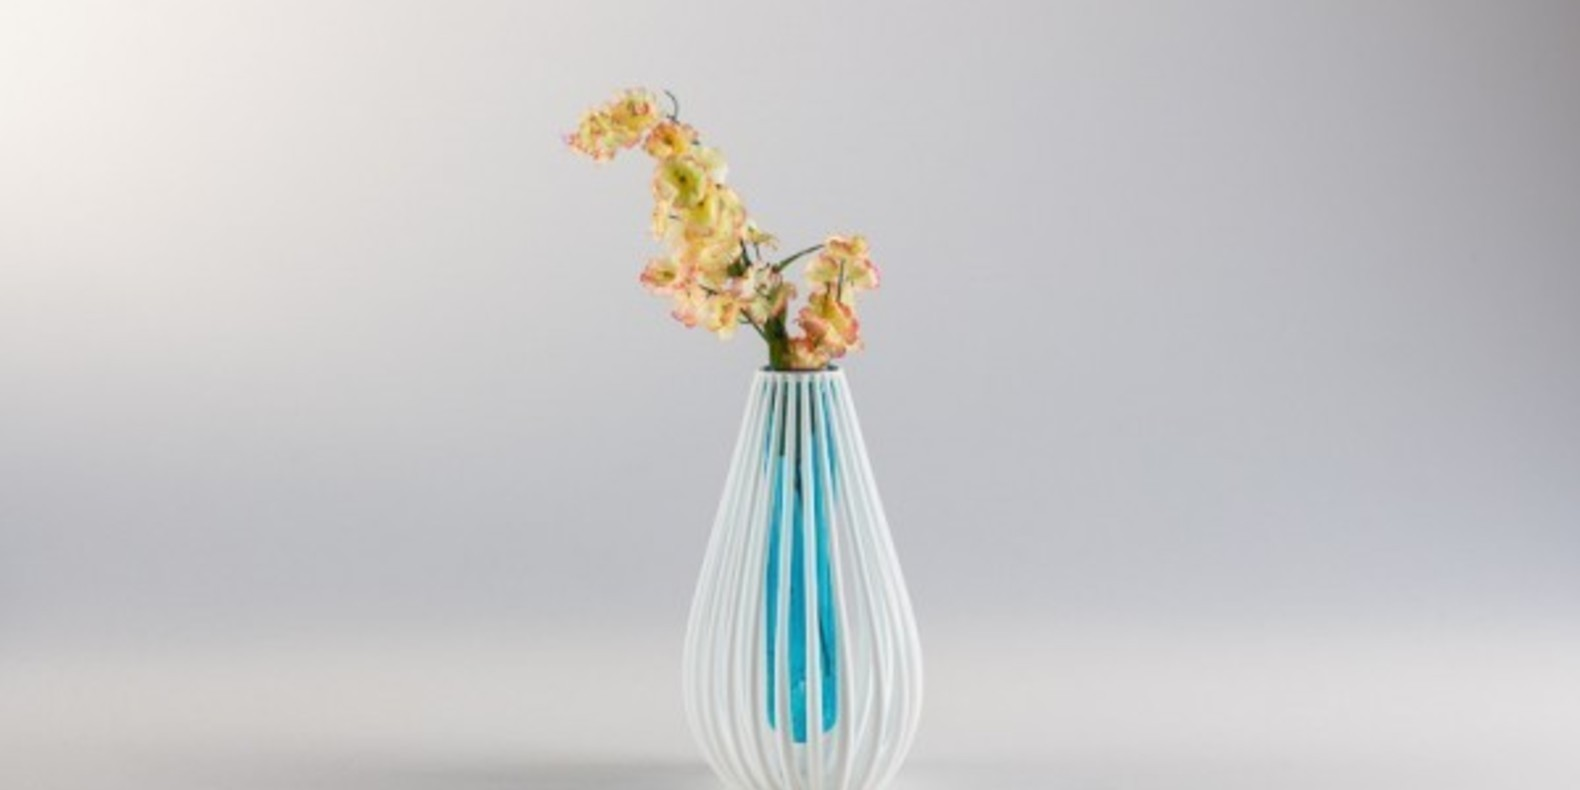 The Marine Vase printed in 3D